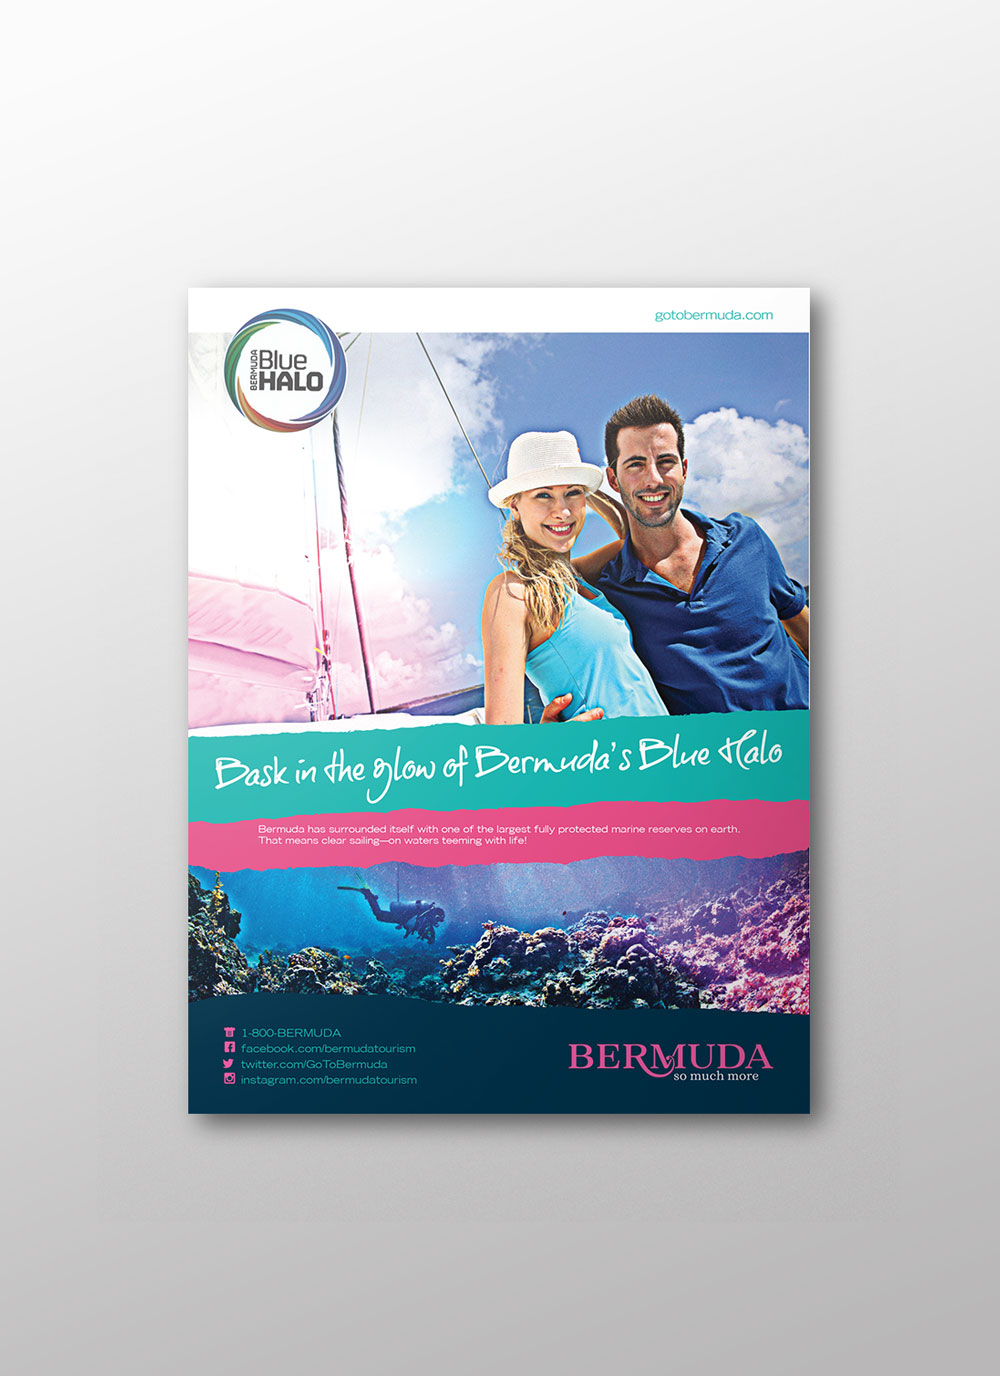 Bermuda Tourism Advertisement